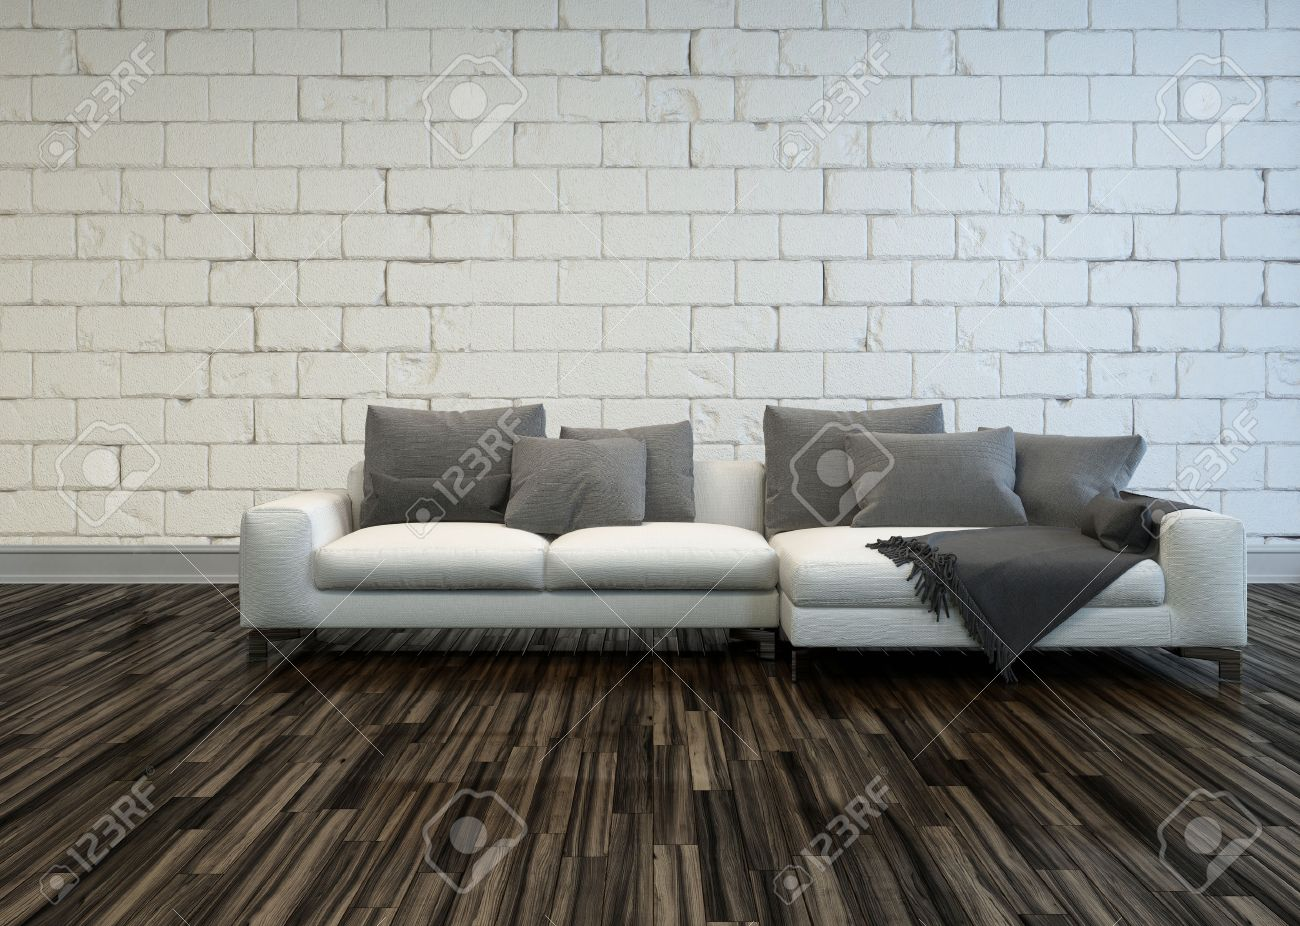 Rustic Living Room Interior With A Large White Sofa Grey Cushions On Bare Wooden